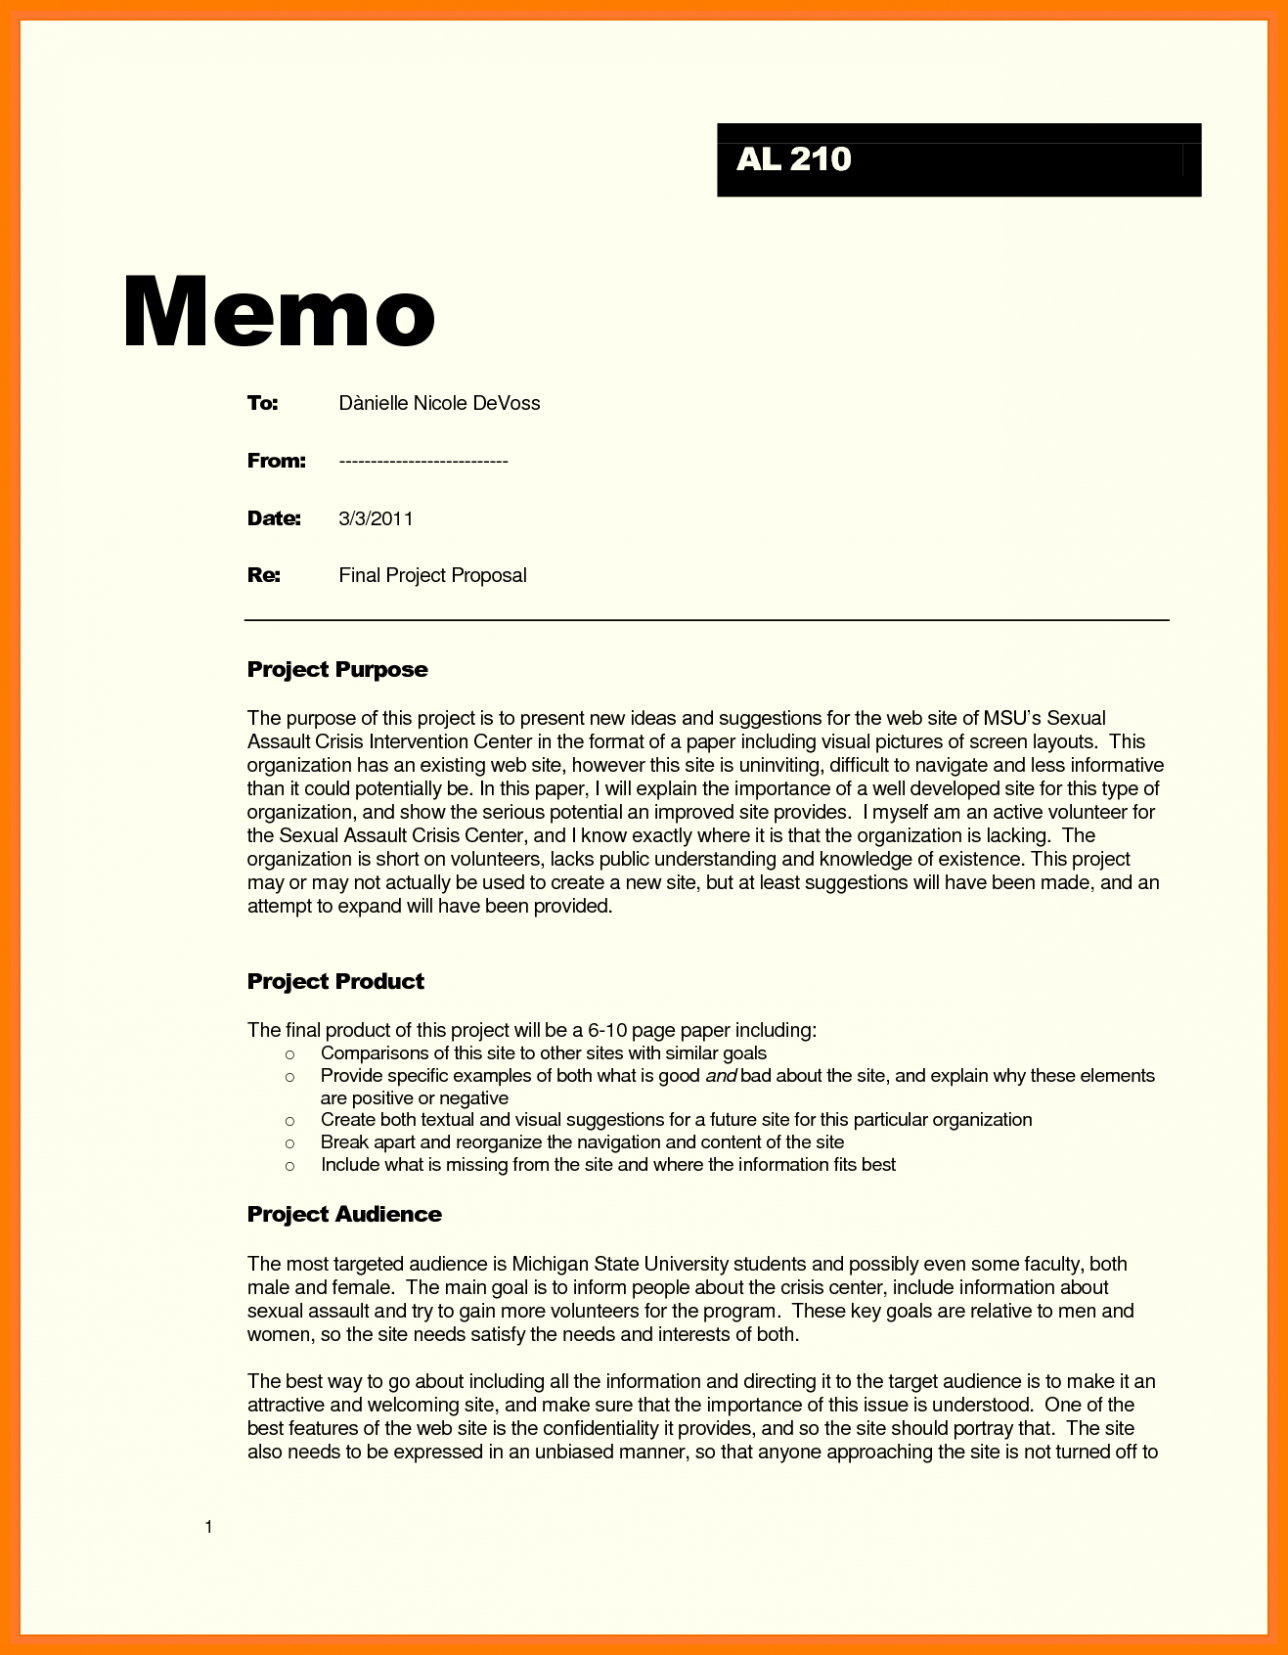 031 Memo Template Word Ideas Templates Breathtaking For With Memo Template Word 2010